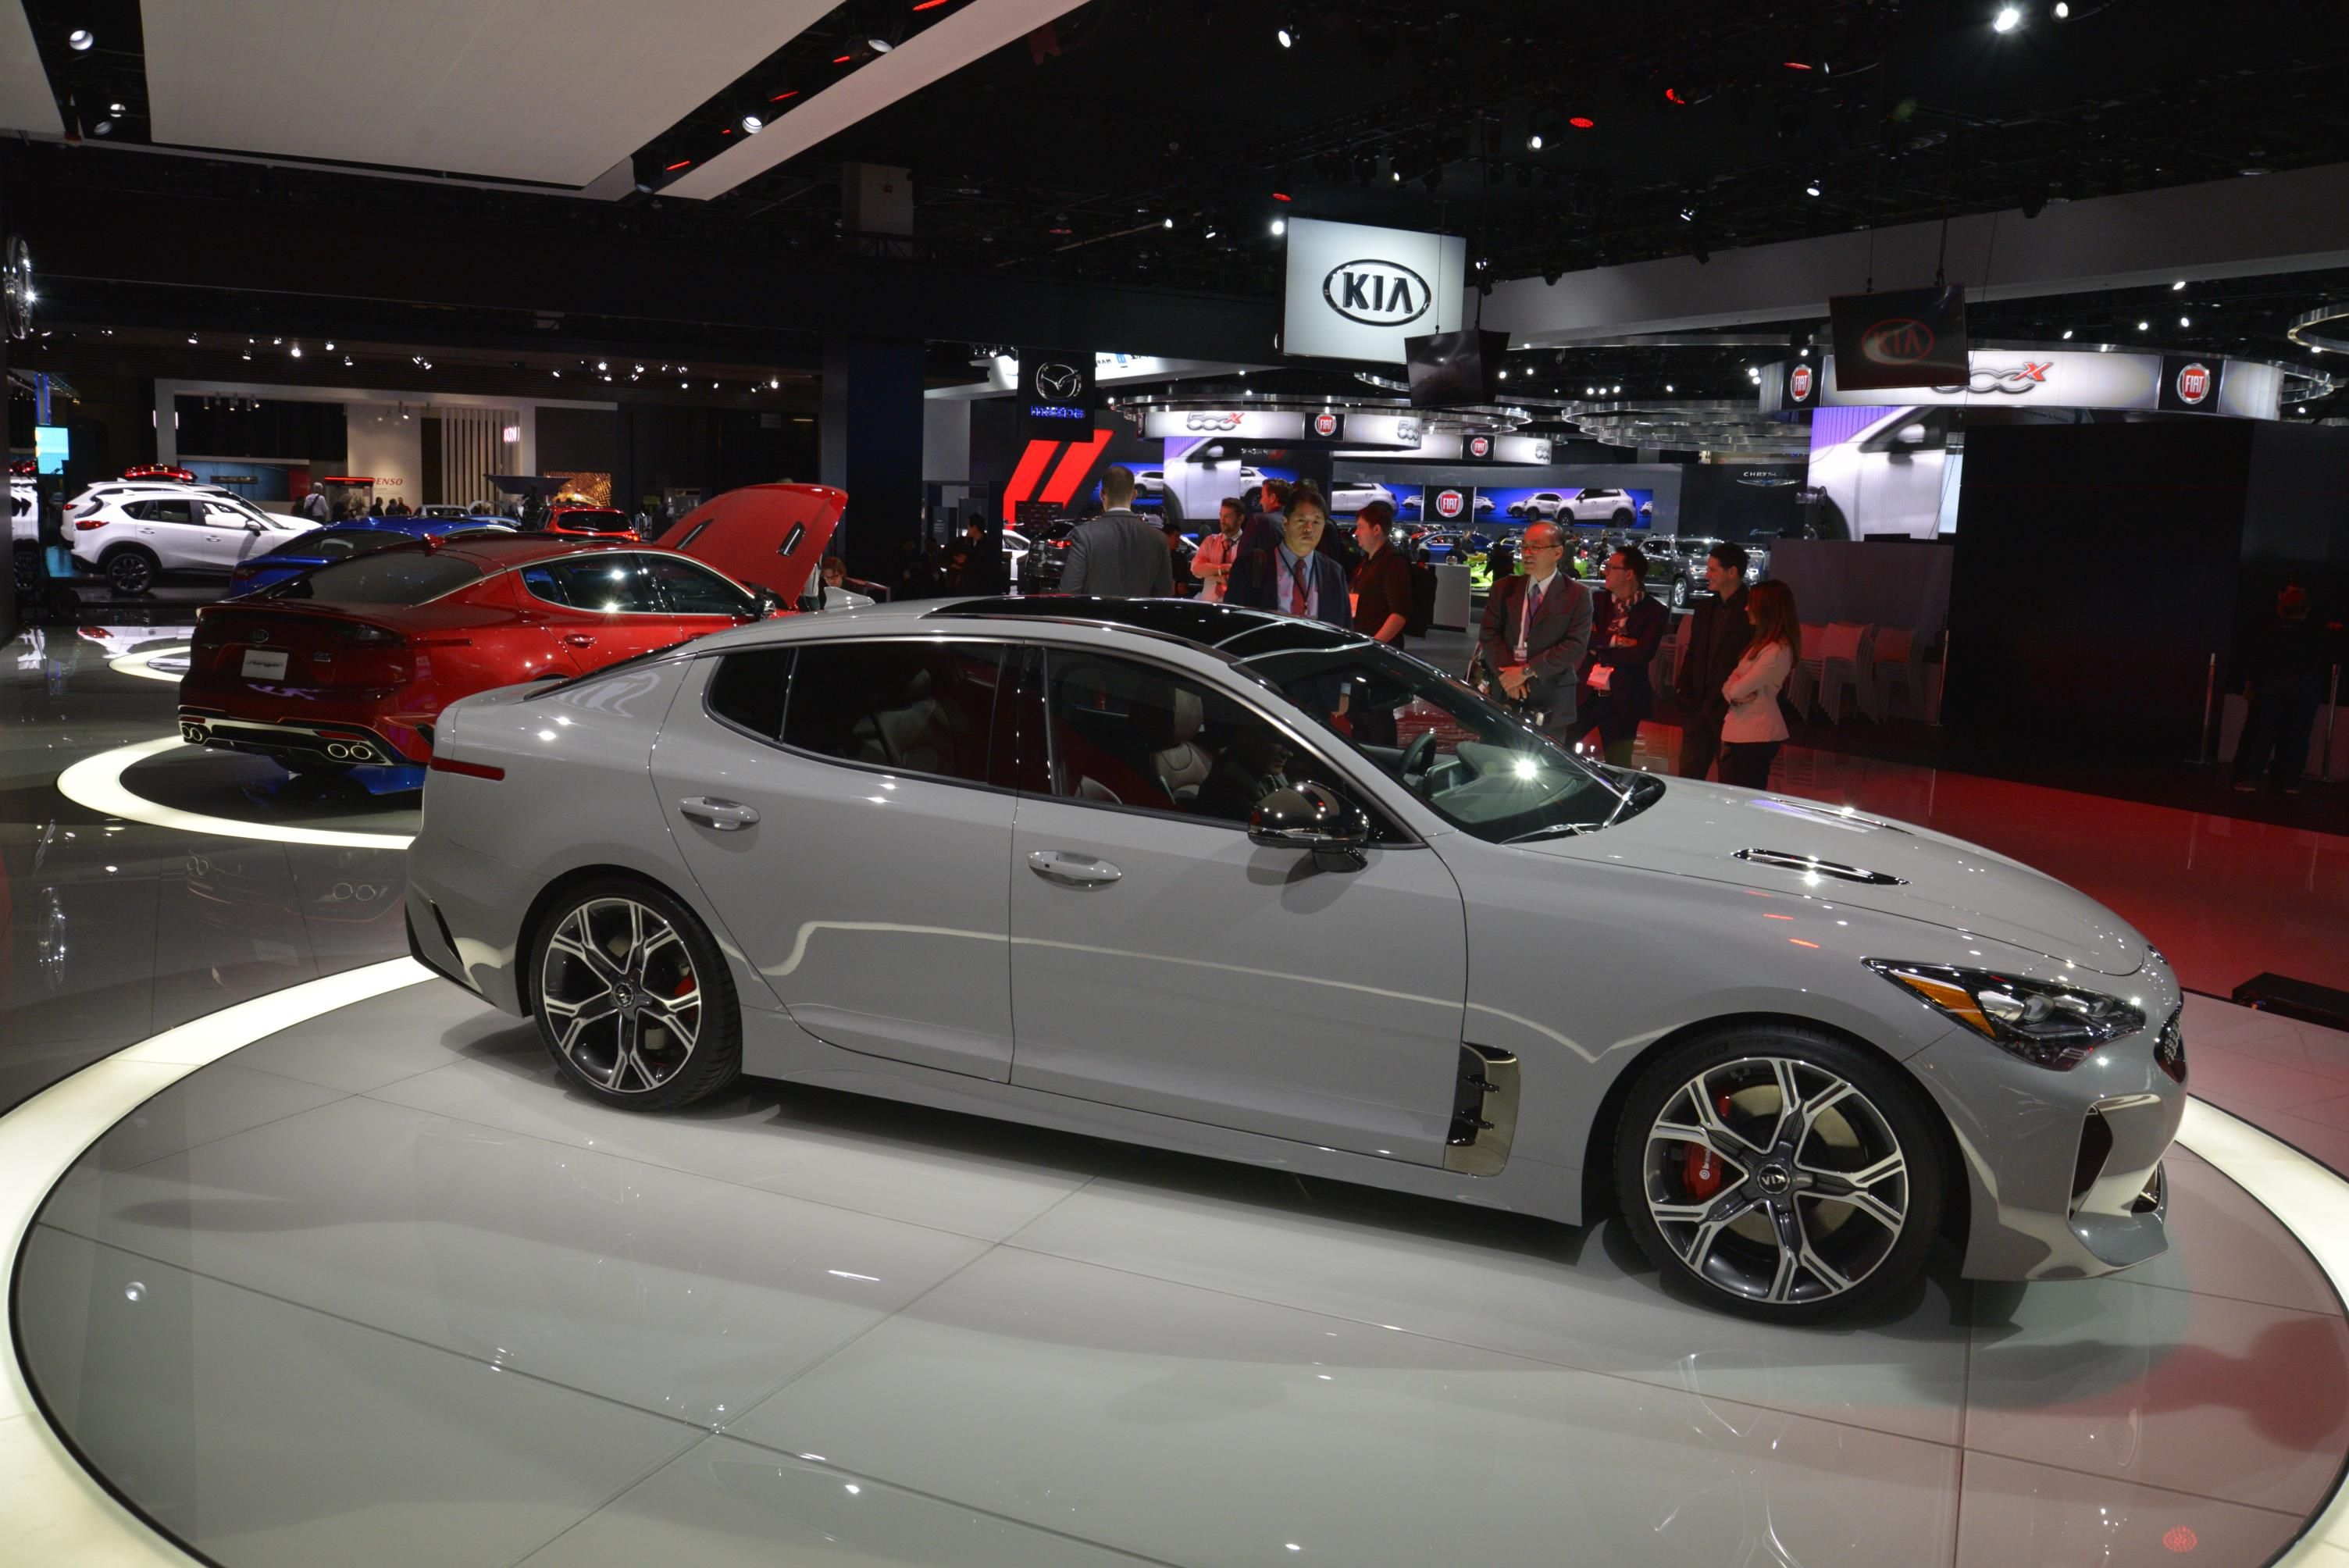 2018 Kia Stinger Looks Like A Porsche Panamera In Nardo Gray Paint 1 Jpg 3 008 2 008 Pixels Kia Stinger Kia Kia Optima